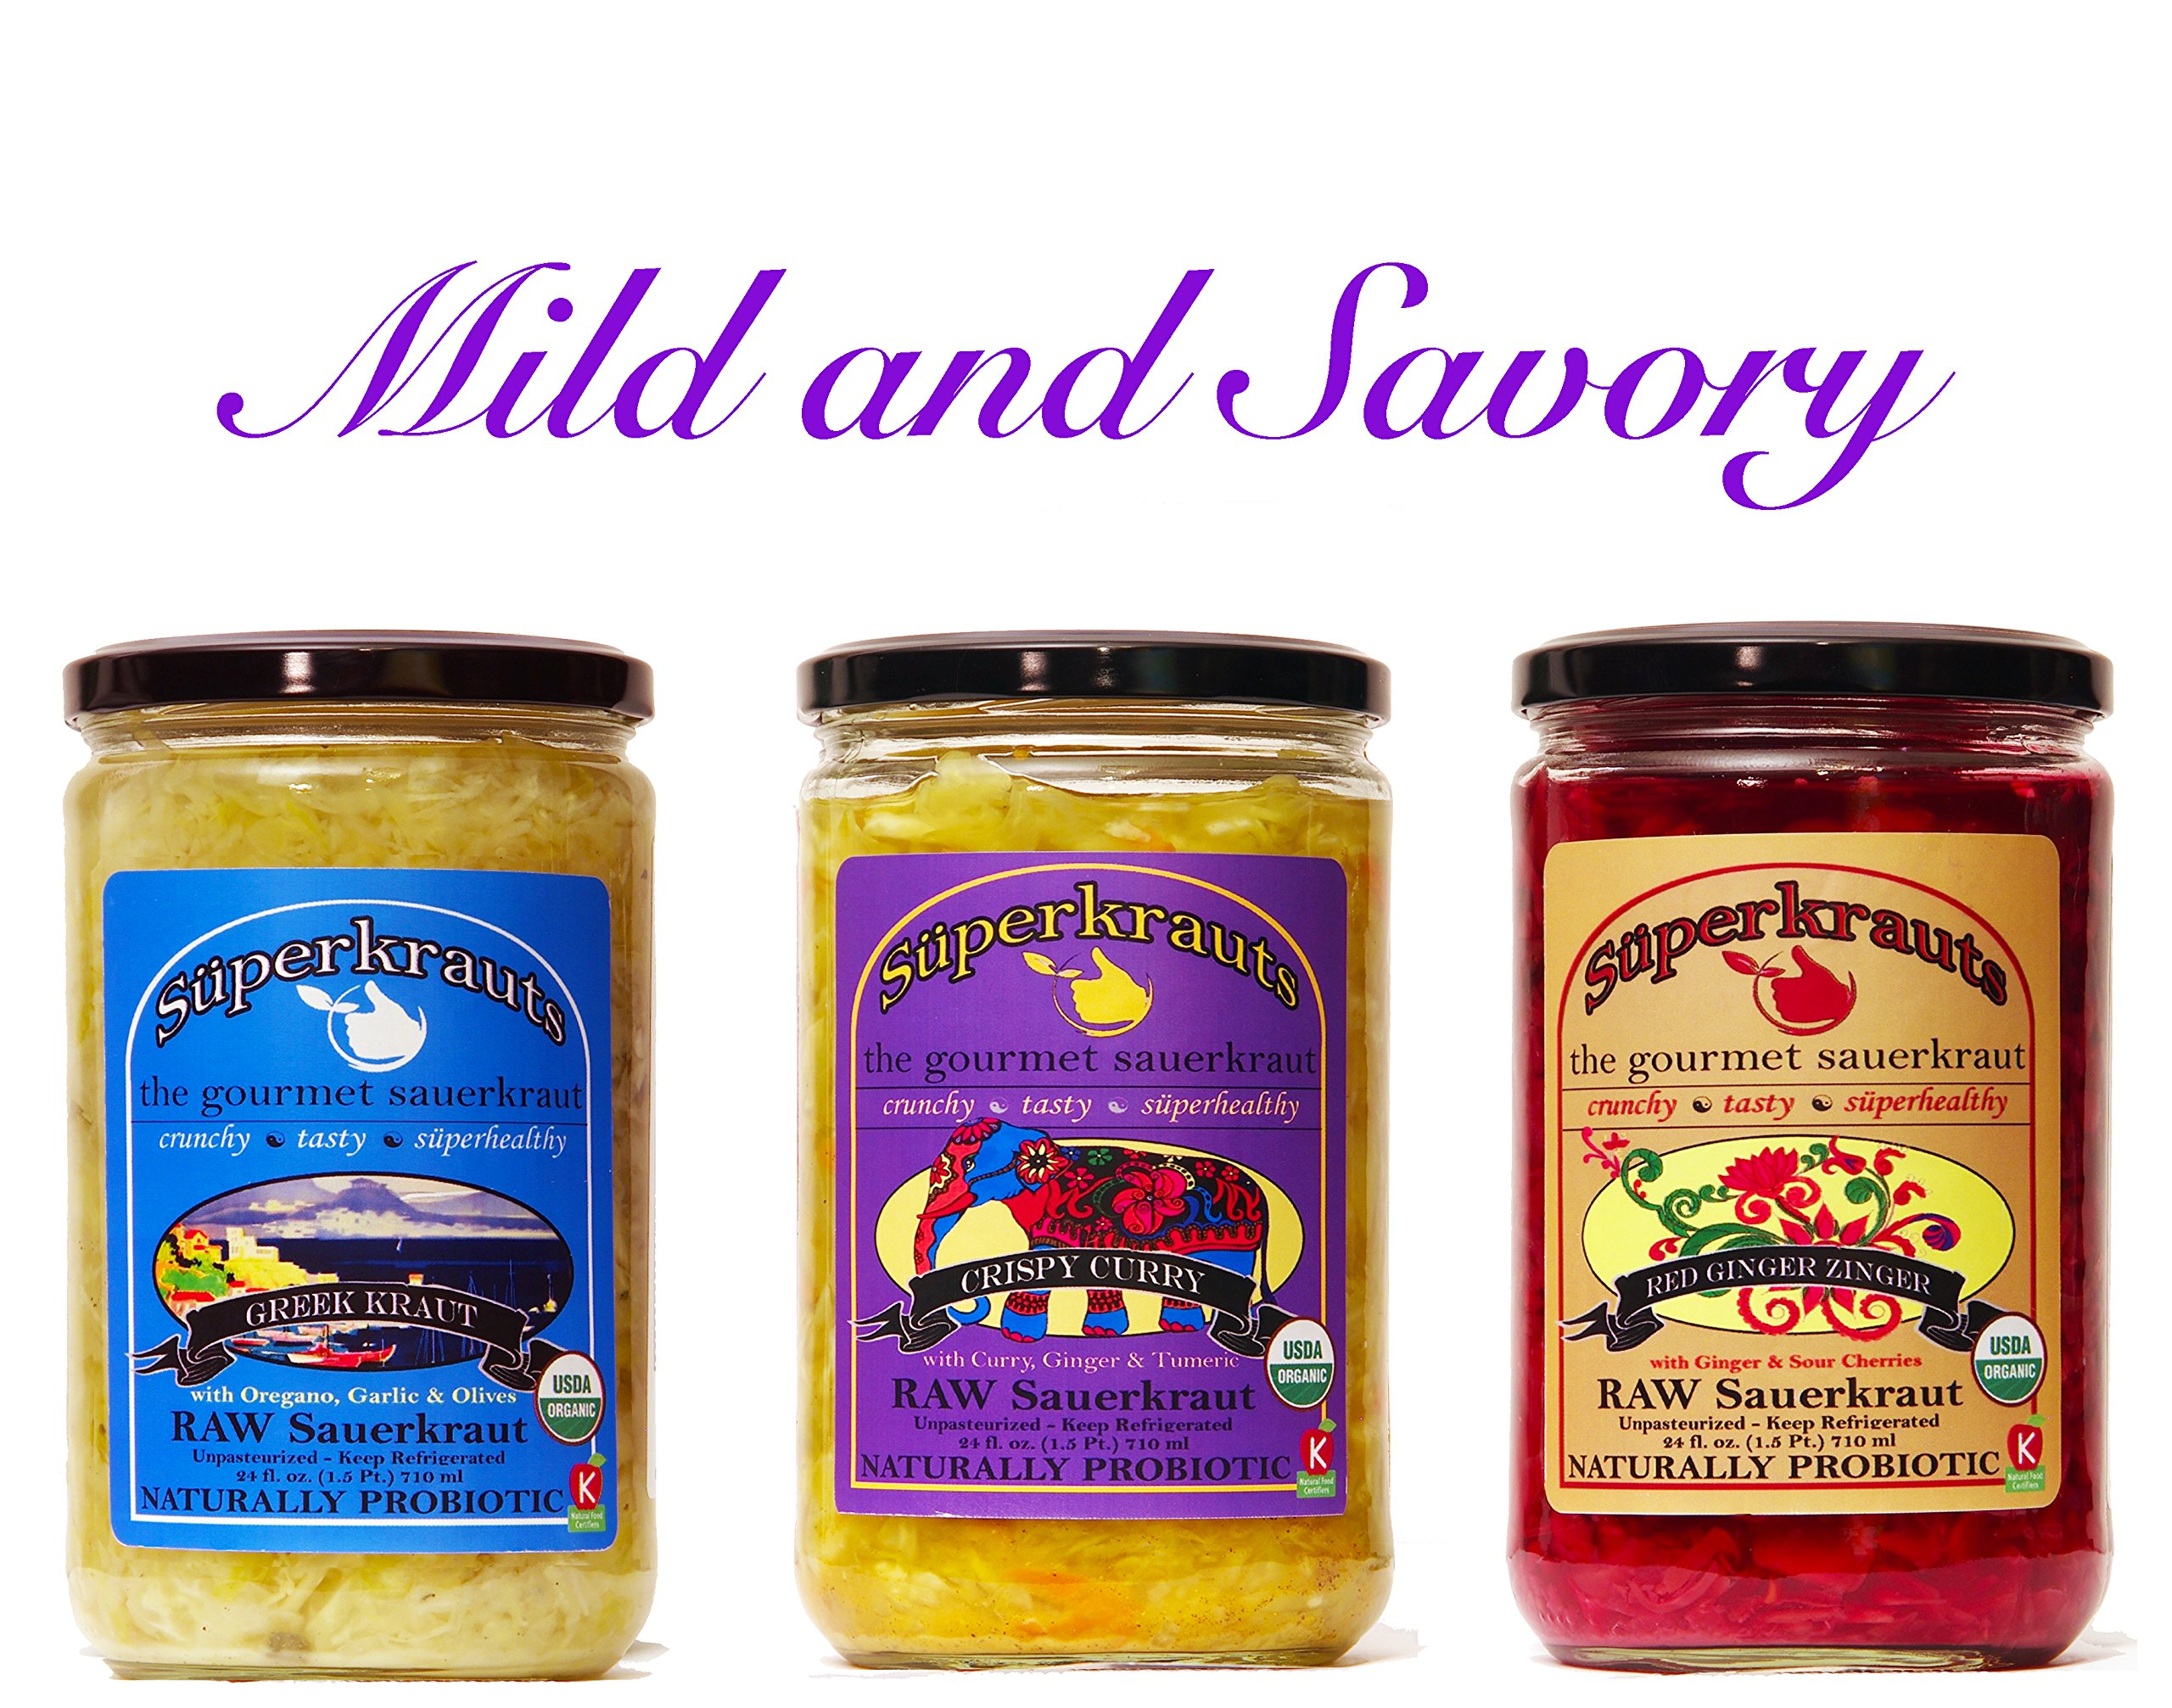 Mild and savory combo-pack: raw fermented sauerkraut, organic, probiotic, kosher and unpasteurized No shipping charges with this combo pack.